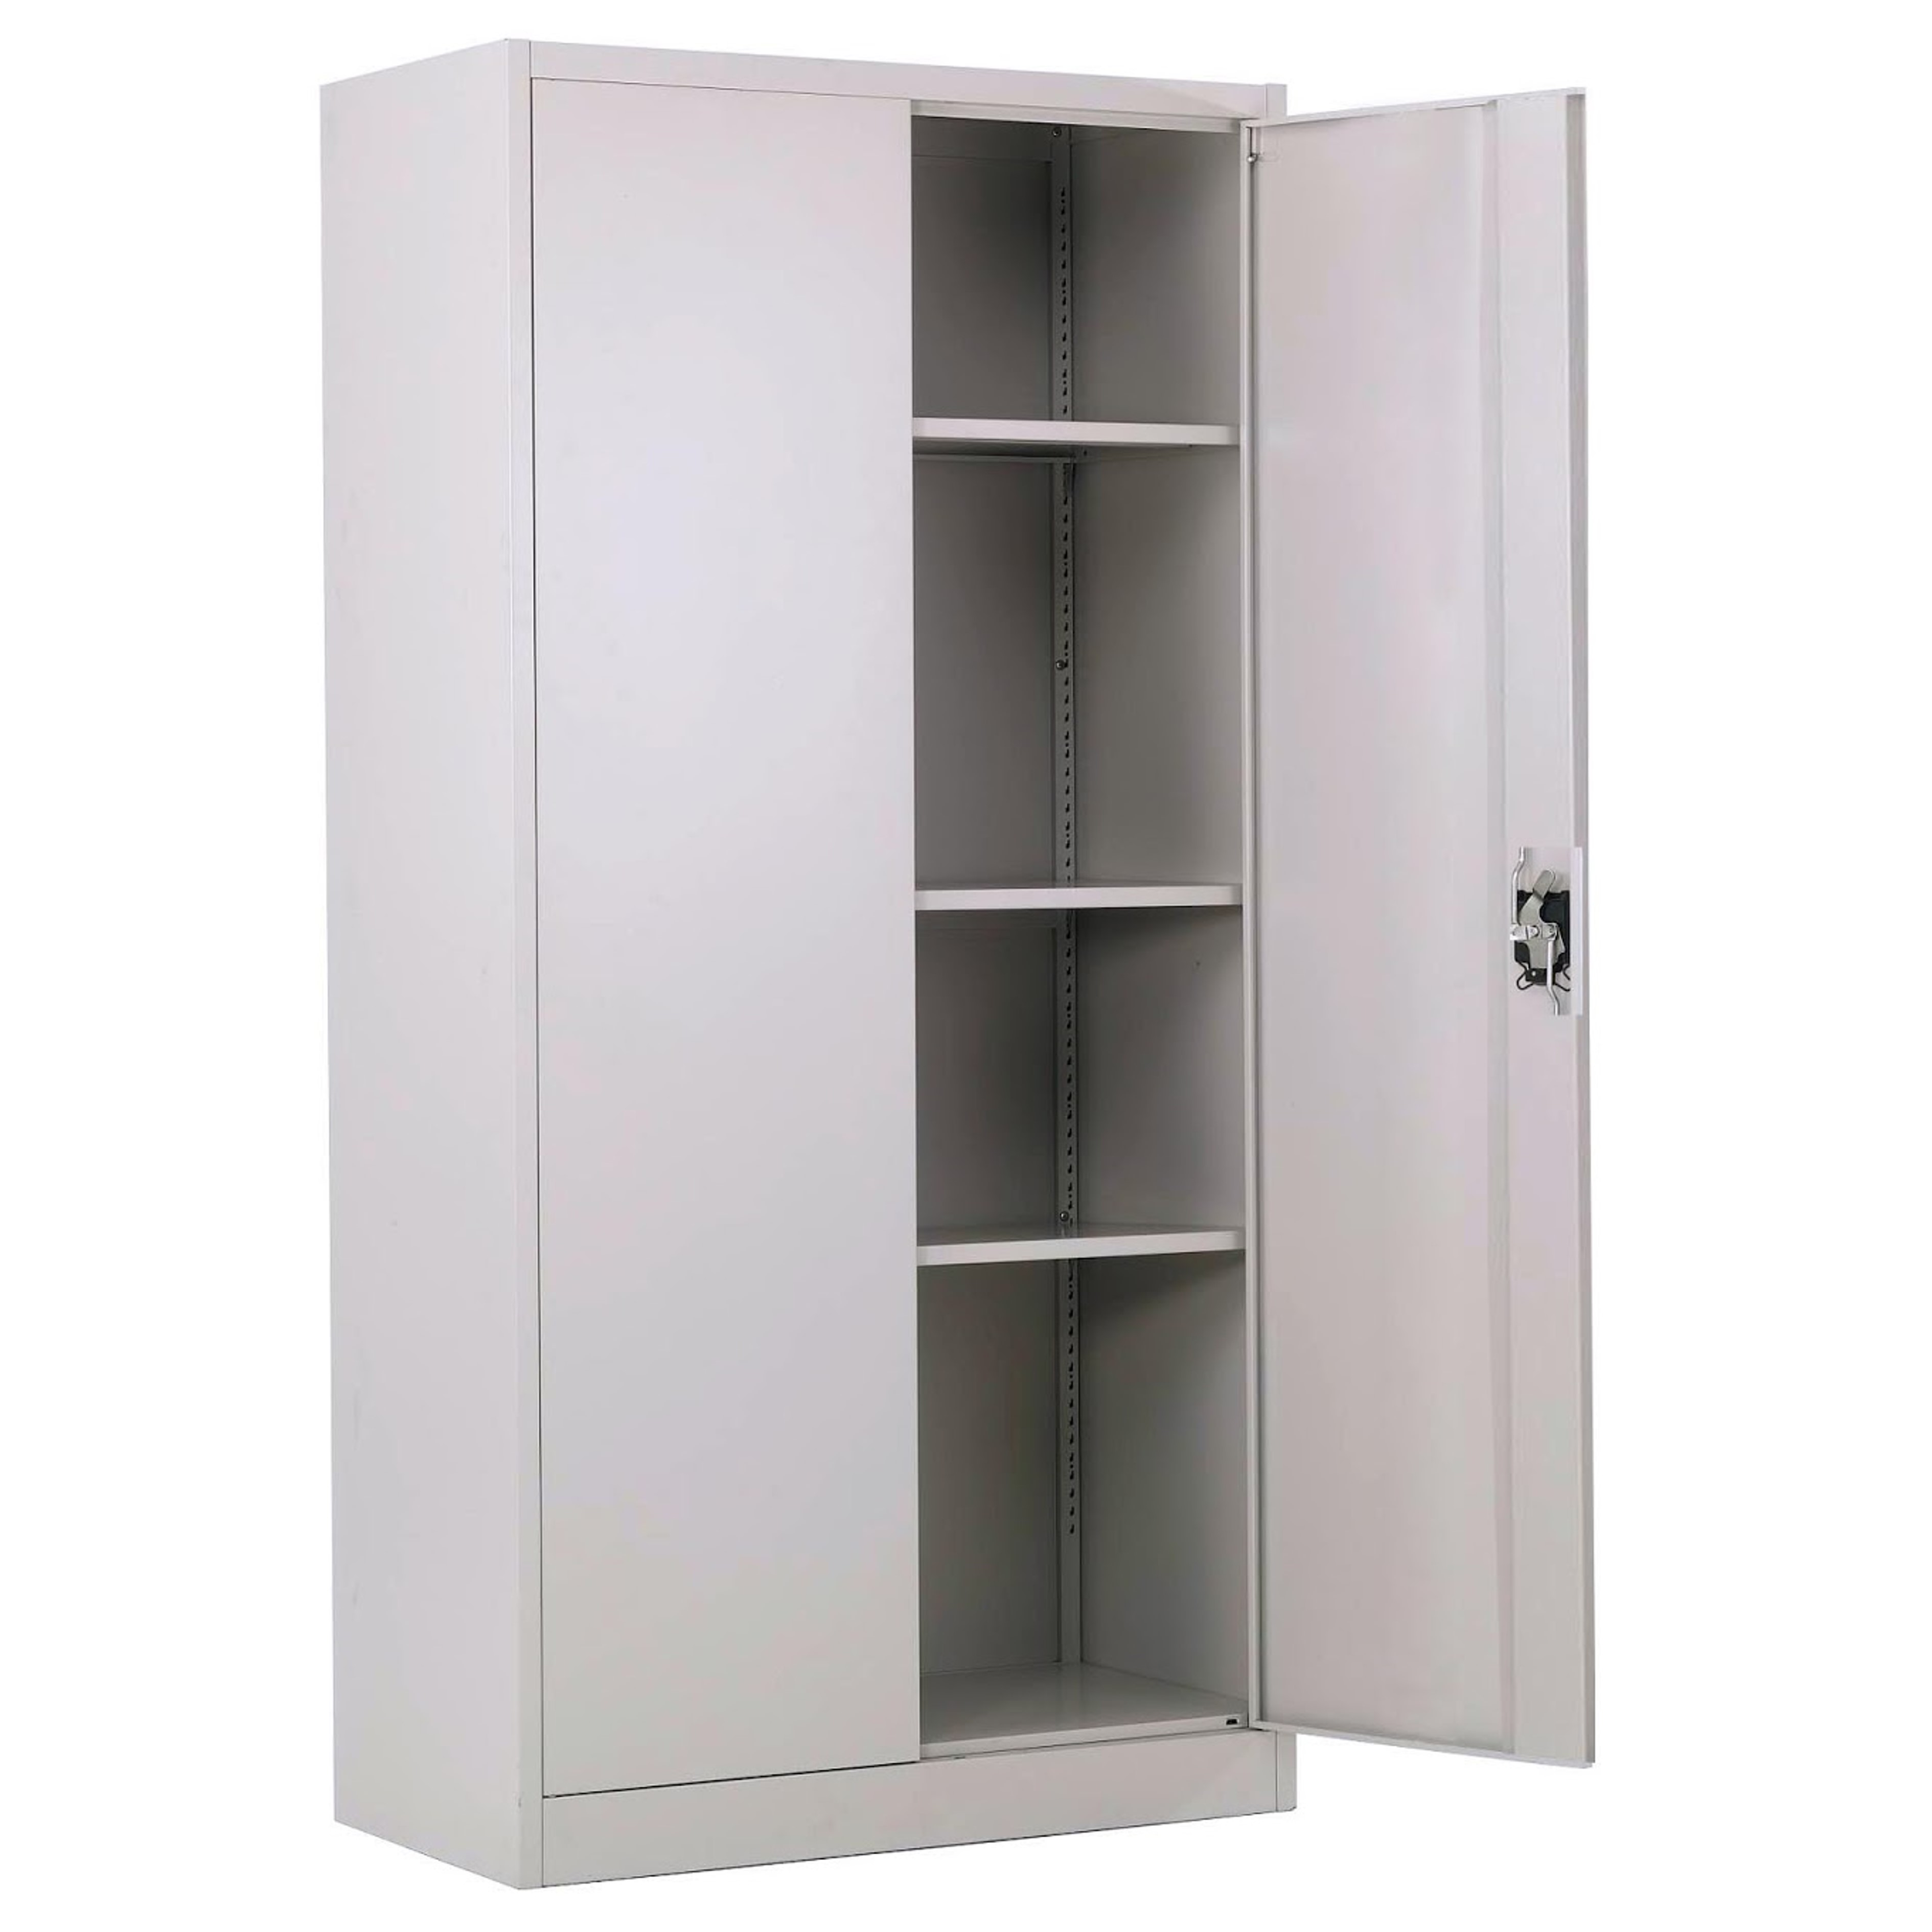 Full Height Steel Cabinet Steel Open Door Gaviton Events